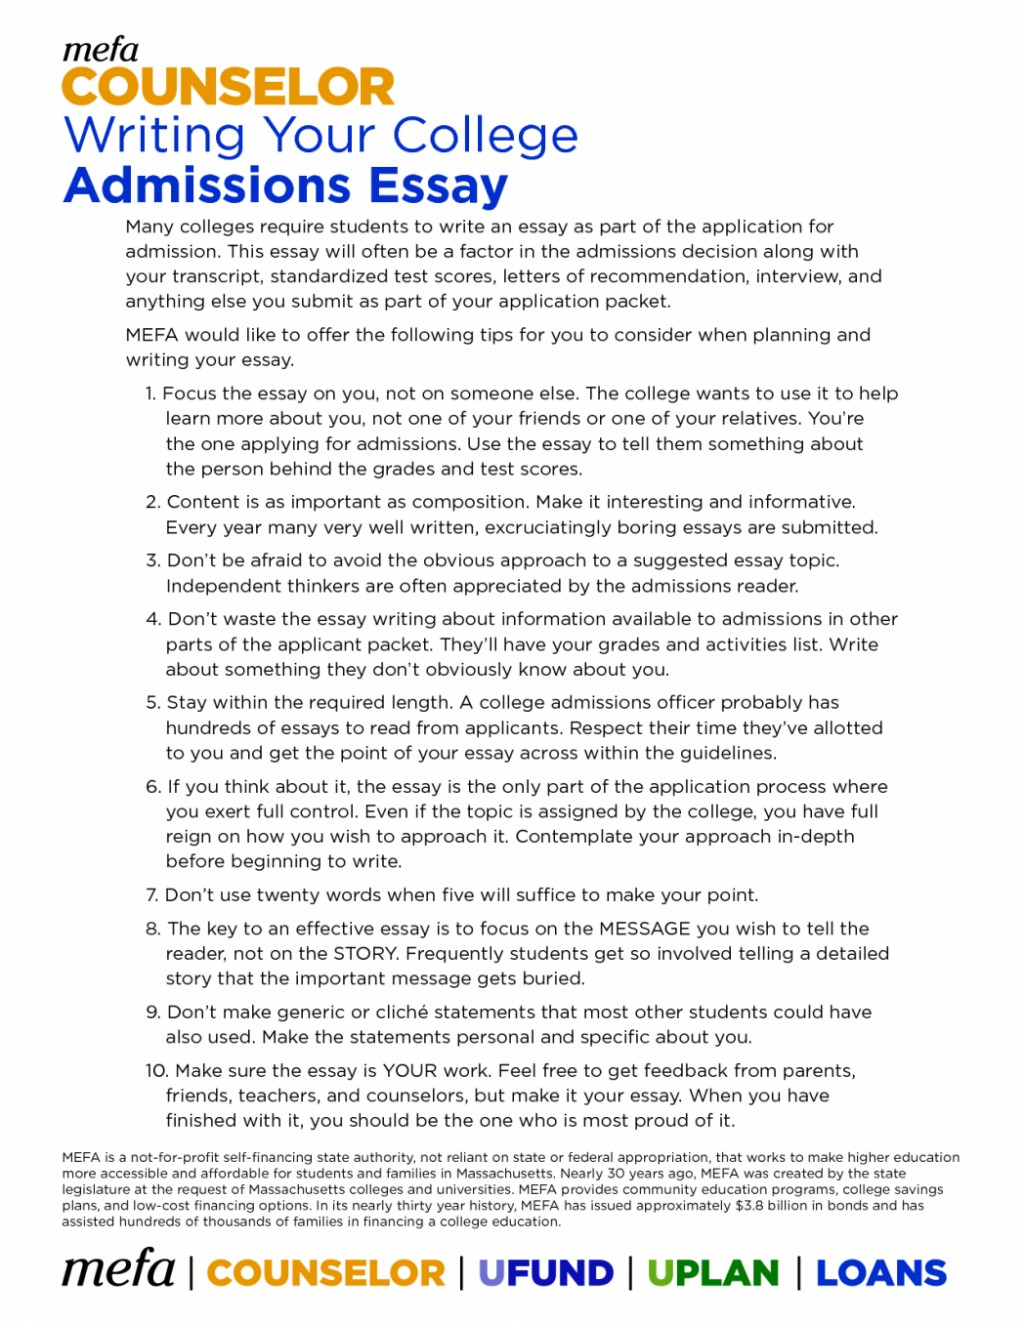 004 Essay Example Writing Custom 2wolvescentervt Help Write My For Free Online Application College Successful Sample Admission L To Remarkable Research Paper Me Large